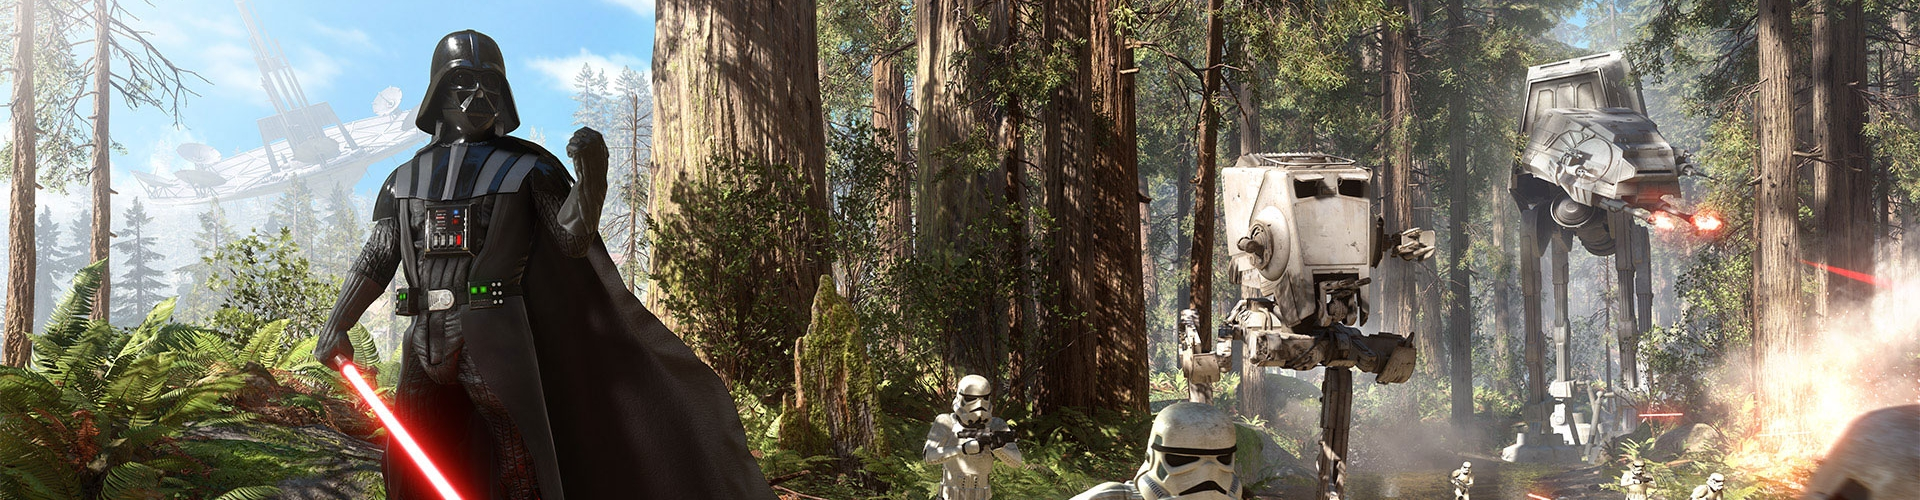 Star Wars: Battlefront - Test + Video: Atmosphärisch herausragender Standard-Shooter